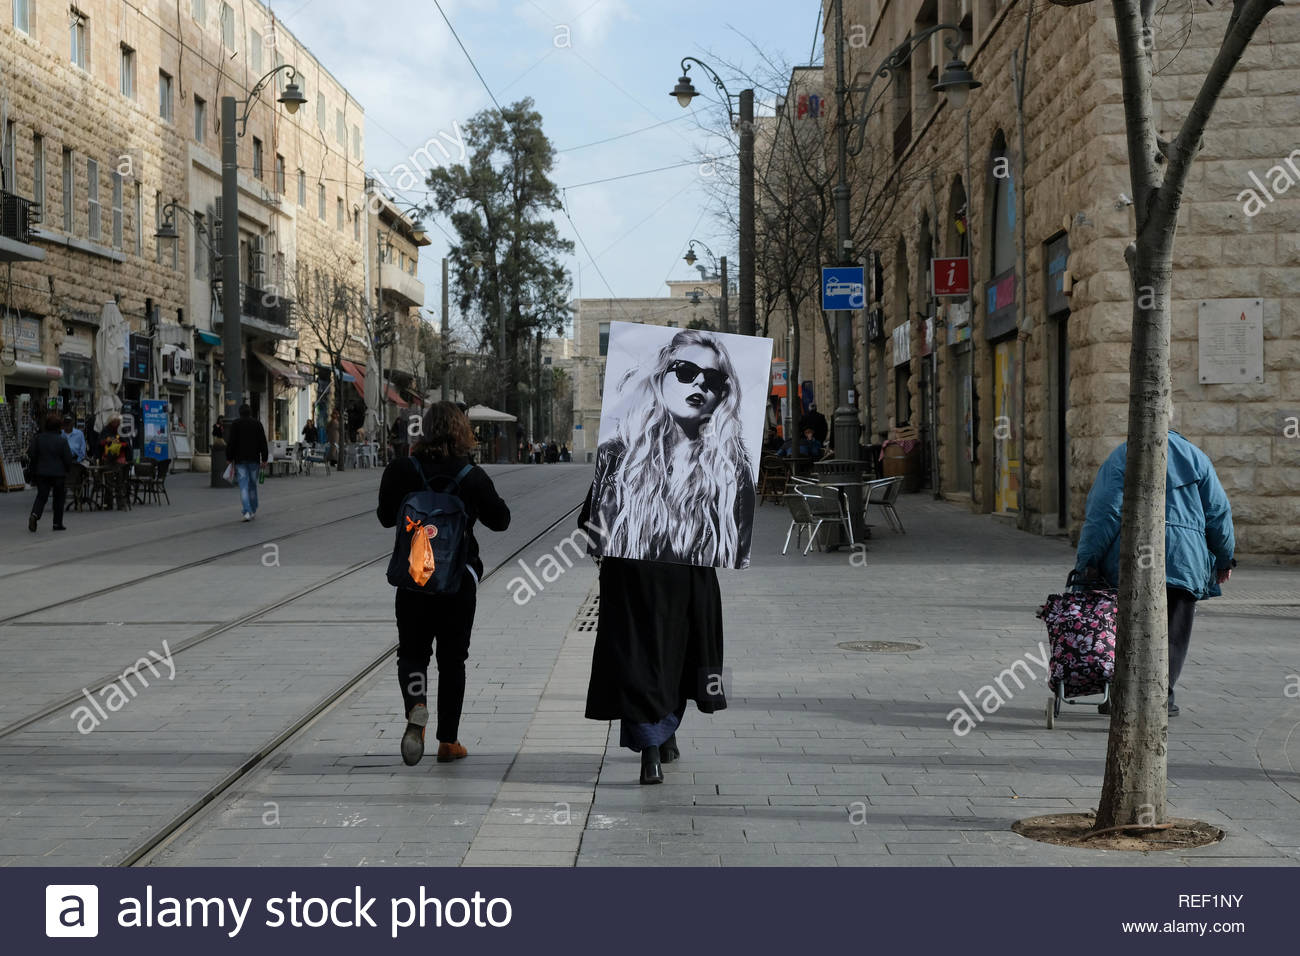 Young Israeli artist Korin Abisdris carrying a large portrait of herself on her back as a tribute to the work of Israeli artist Moti Mizrachi ( 1973) entitled 'Via Dolorosa' in Jaffa road the longest and oldest major streets in downtown West Jerusalem Israel - Stock Image